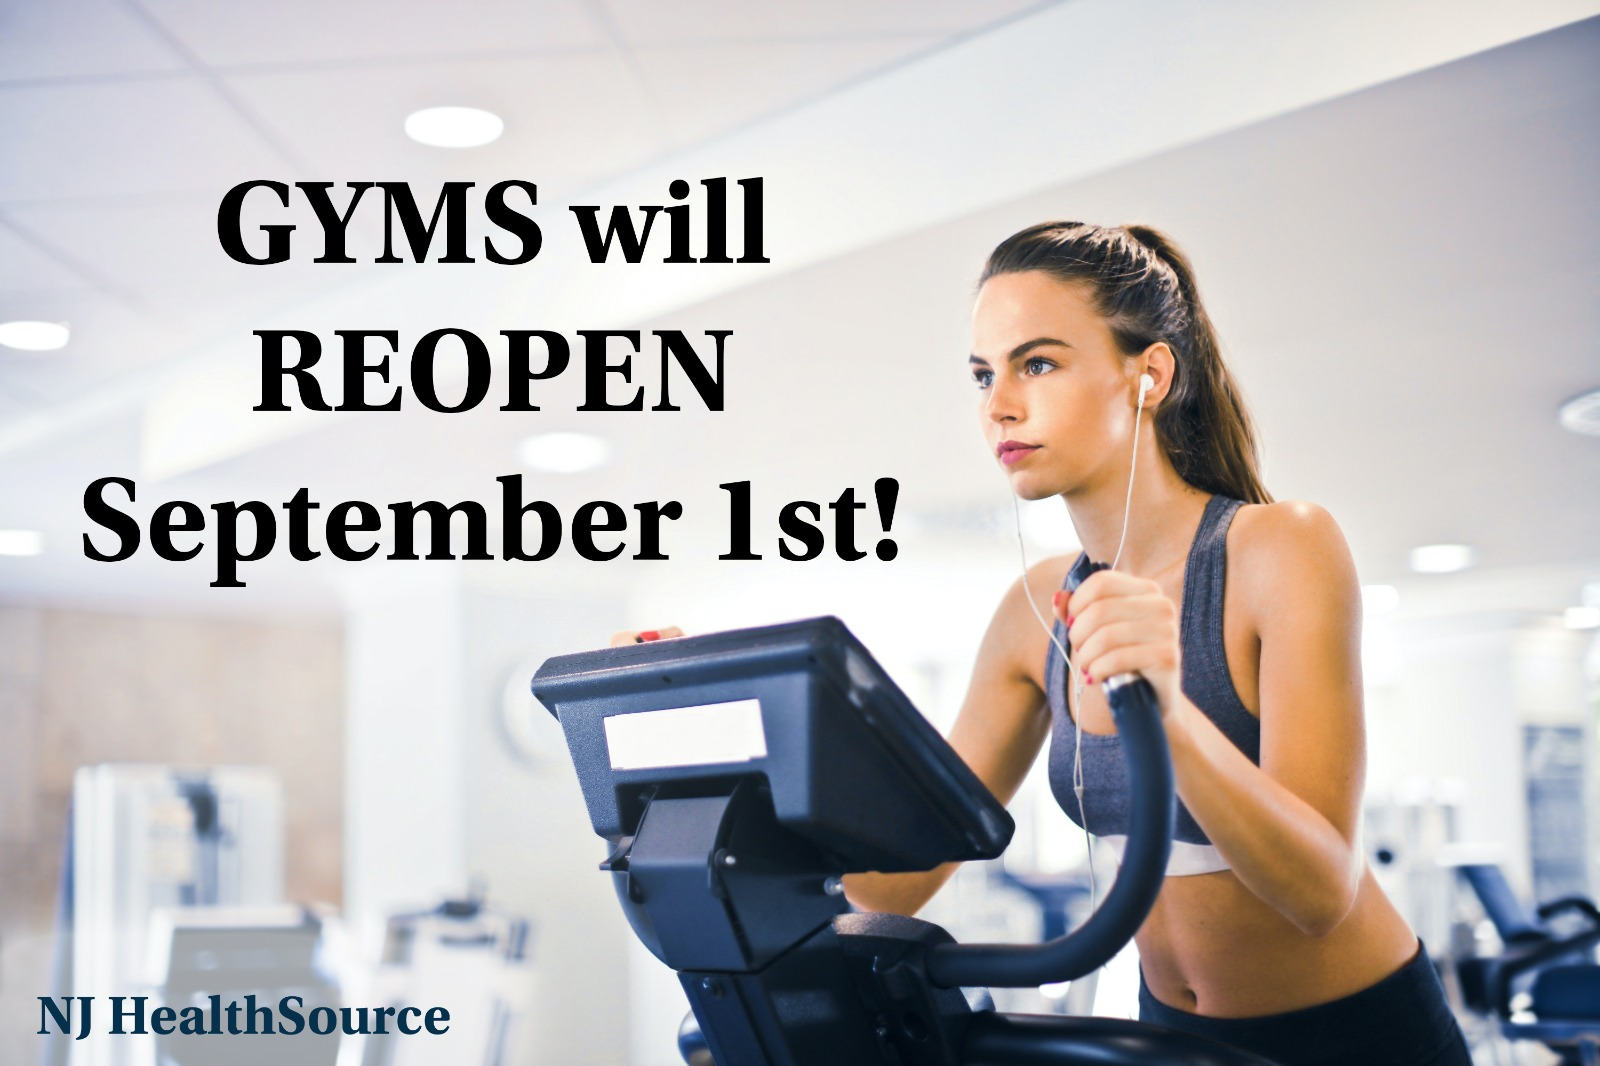 gymreopen